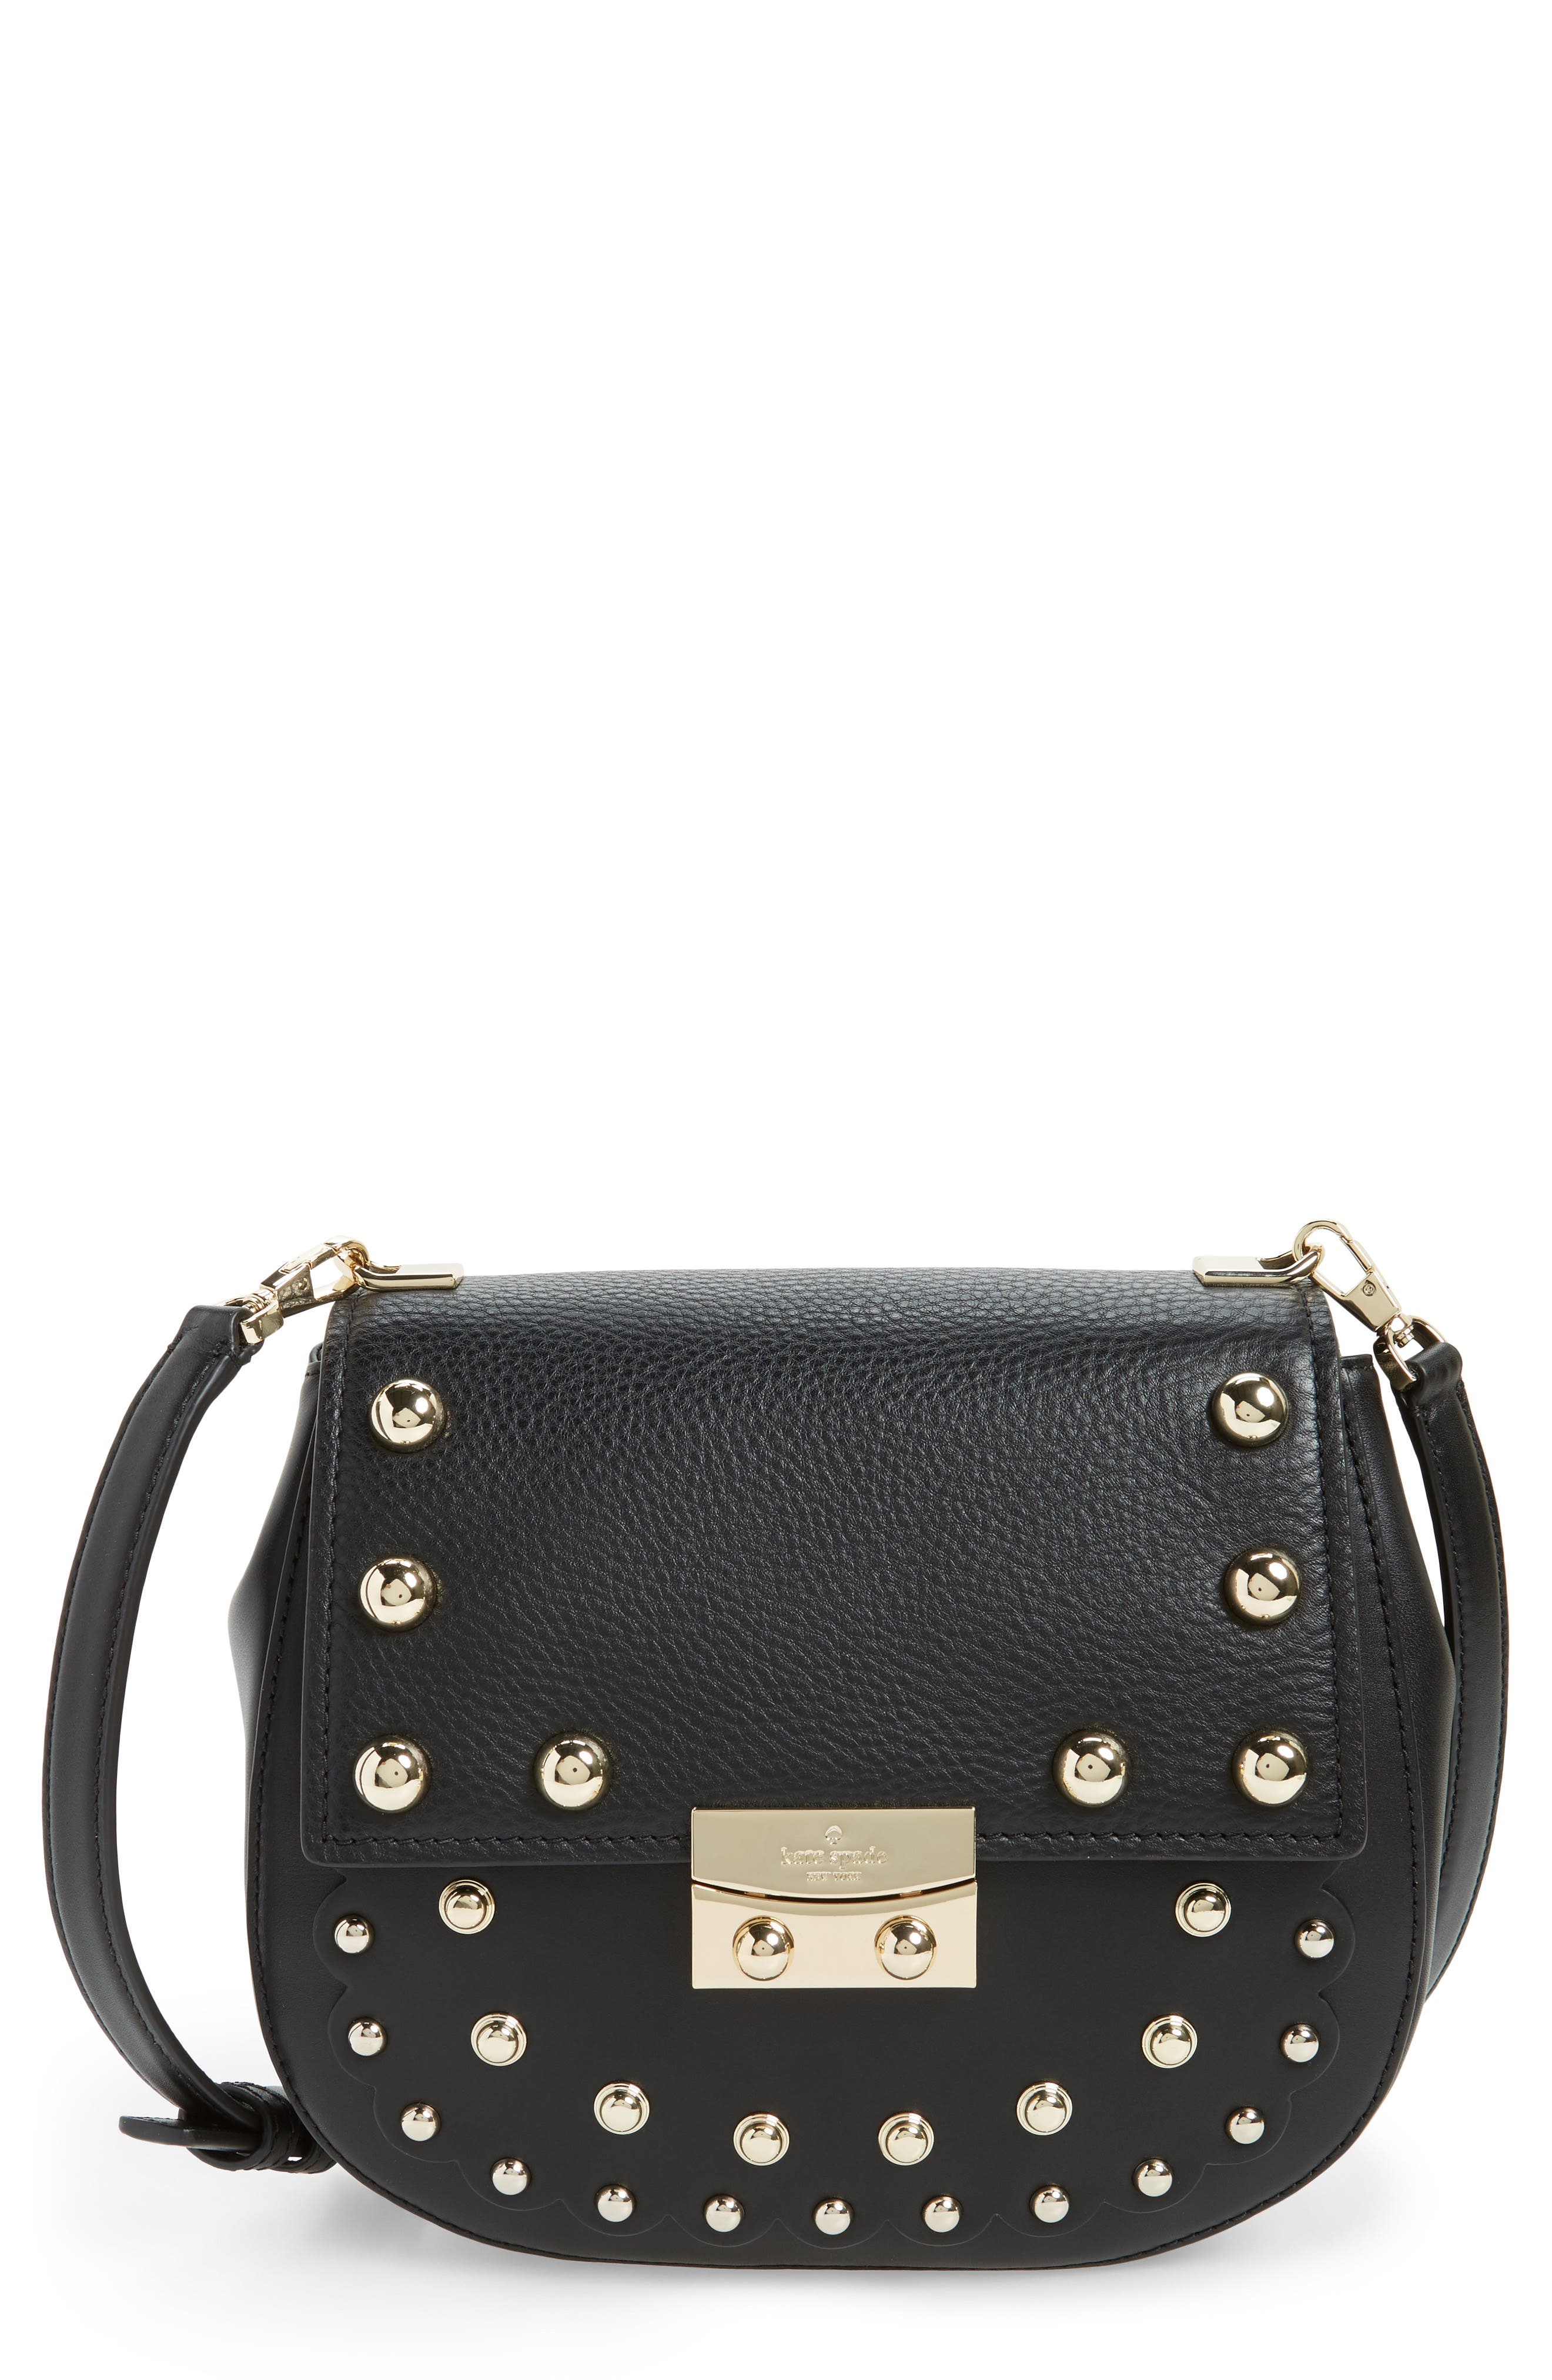 madison stewart street - byrdie studded leather crossbody bag,                             Main thumbnail 1, color,                             001